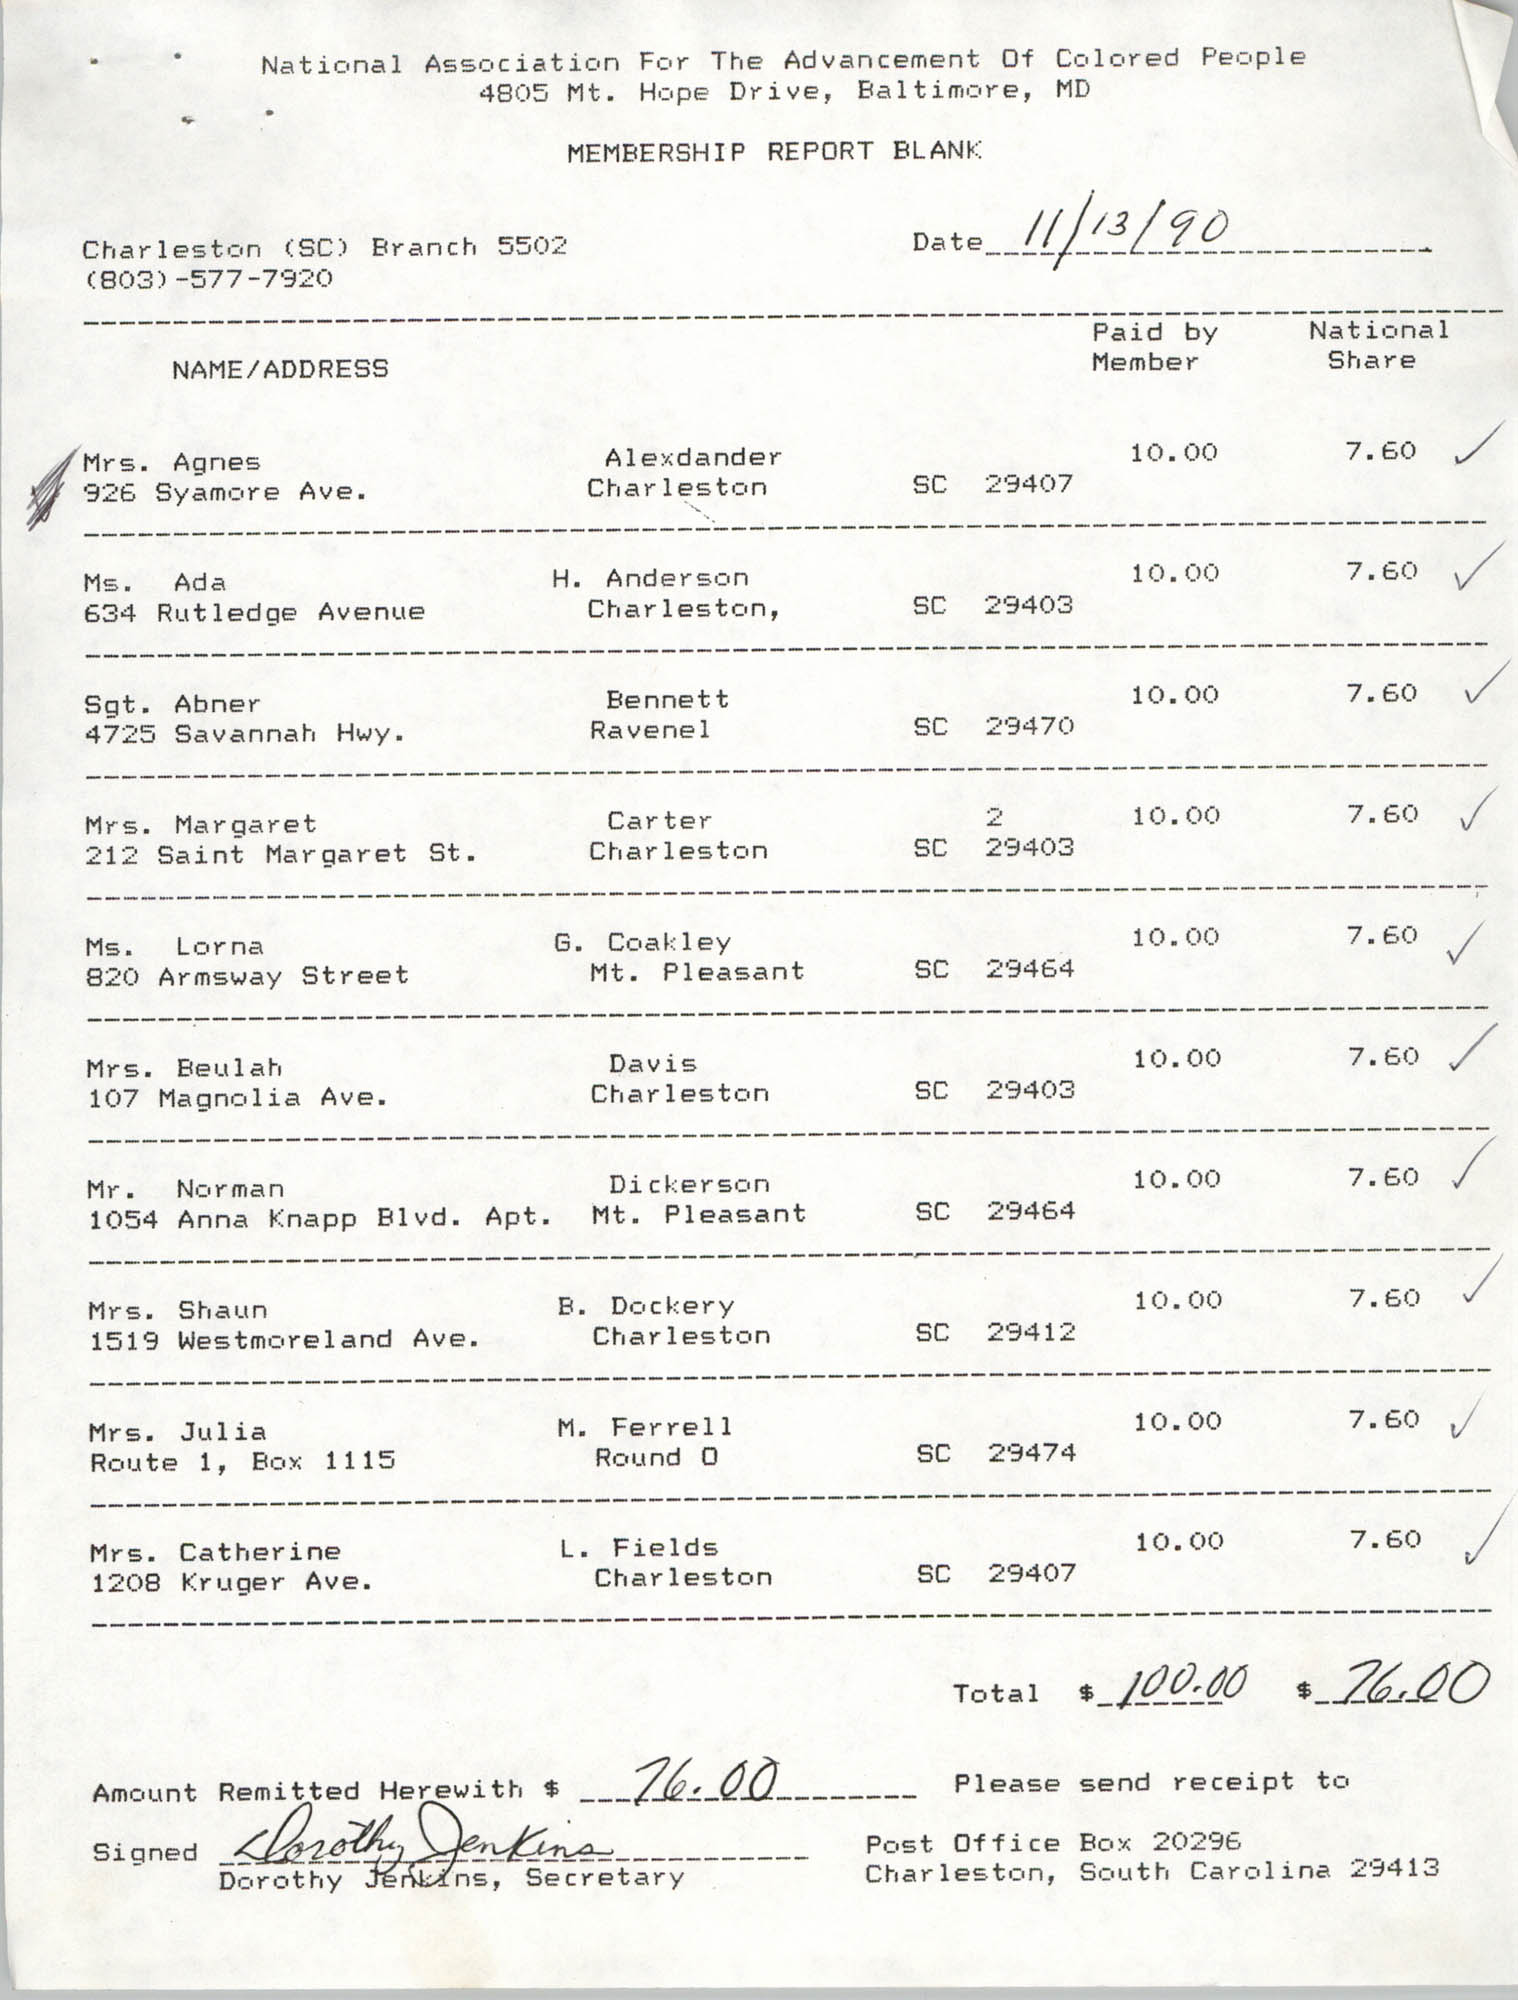 Membership Report Blank, Charleston Branch of the NAACP, Dorothy Jenkins, November 13, 1990